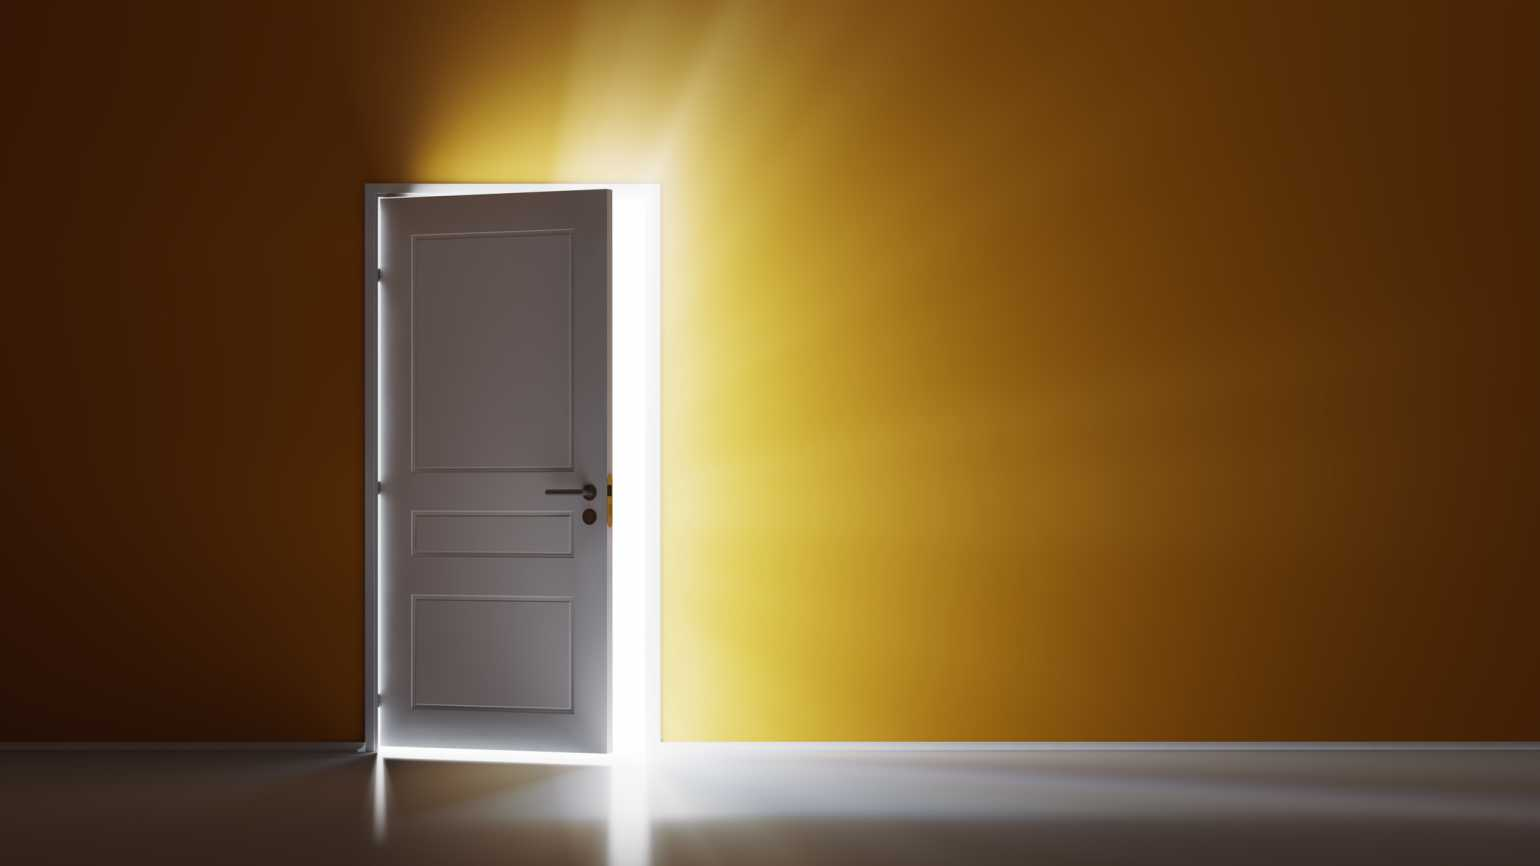 A door cracked open with light streaming through; Getty Images